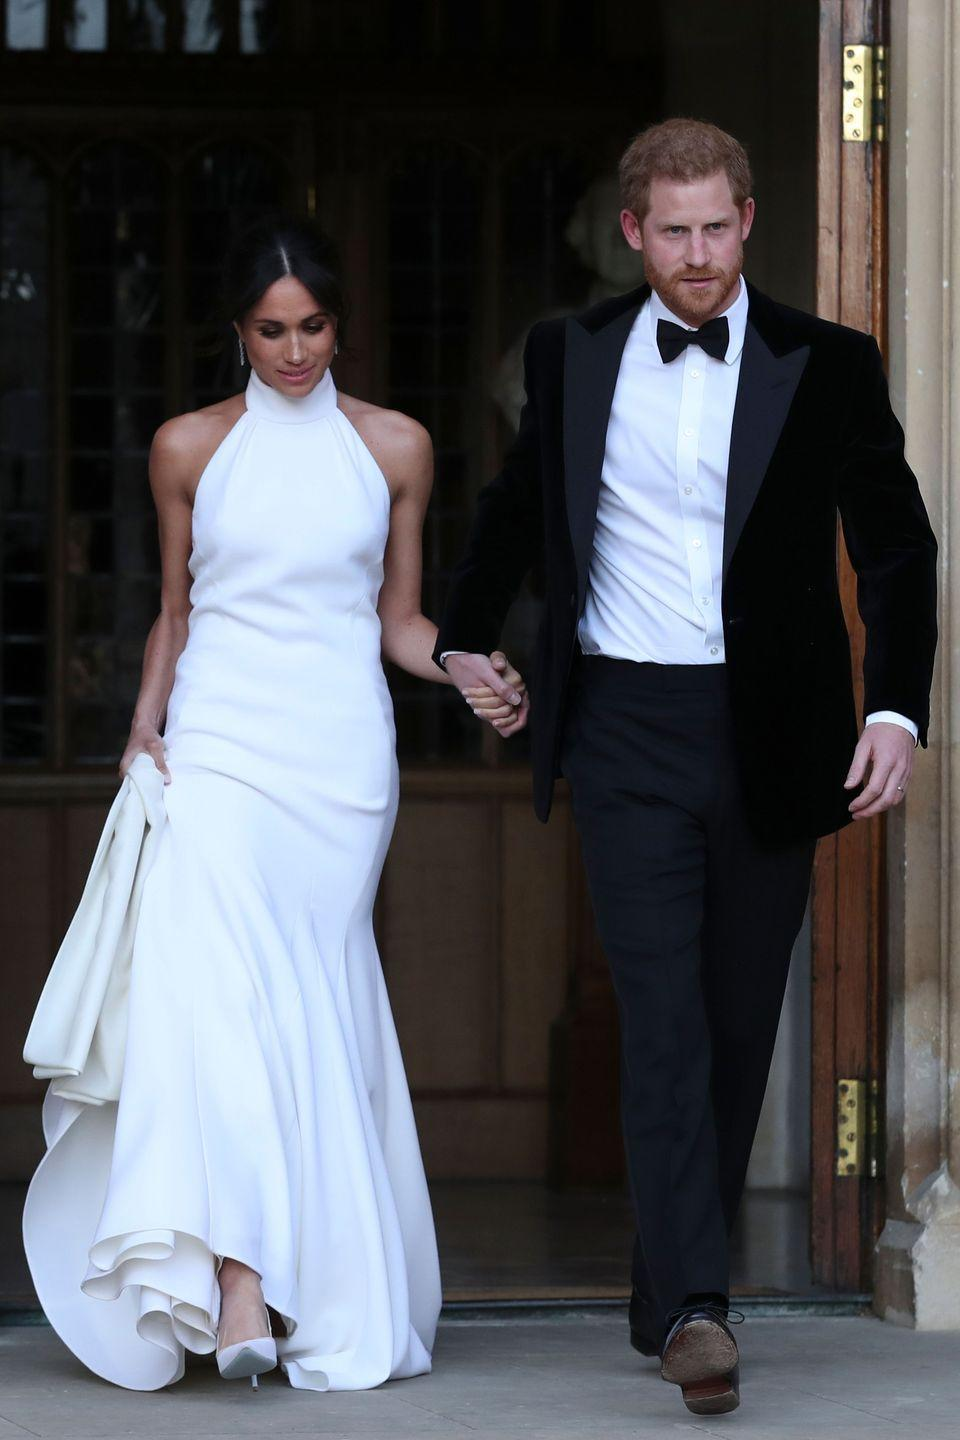 "<p>The Duchess of Sussex <a href=""https://www.townandcountrymag.com/society/tradition/a20759645/meghan-markle-royal-wedding-reception-dress-photos/"" rel=""nofollow noopener"" target=""_blank"" data-ylk=""slk:wore a second bridal gown"" class=""link rapid-noclick-resp"">wore a second bridal gown</a> which was designed by Stella McCartney.</p>"